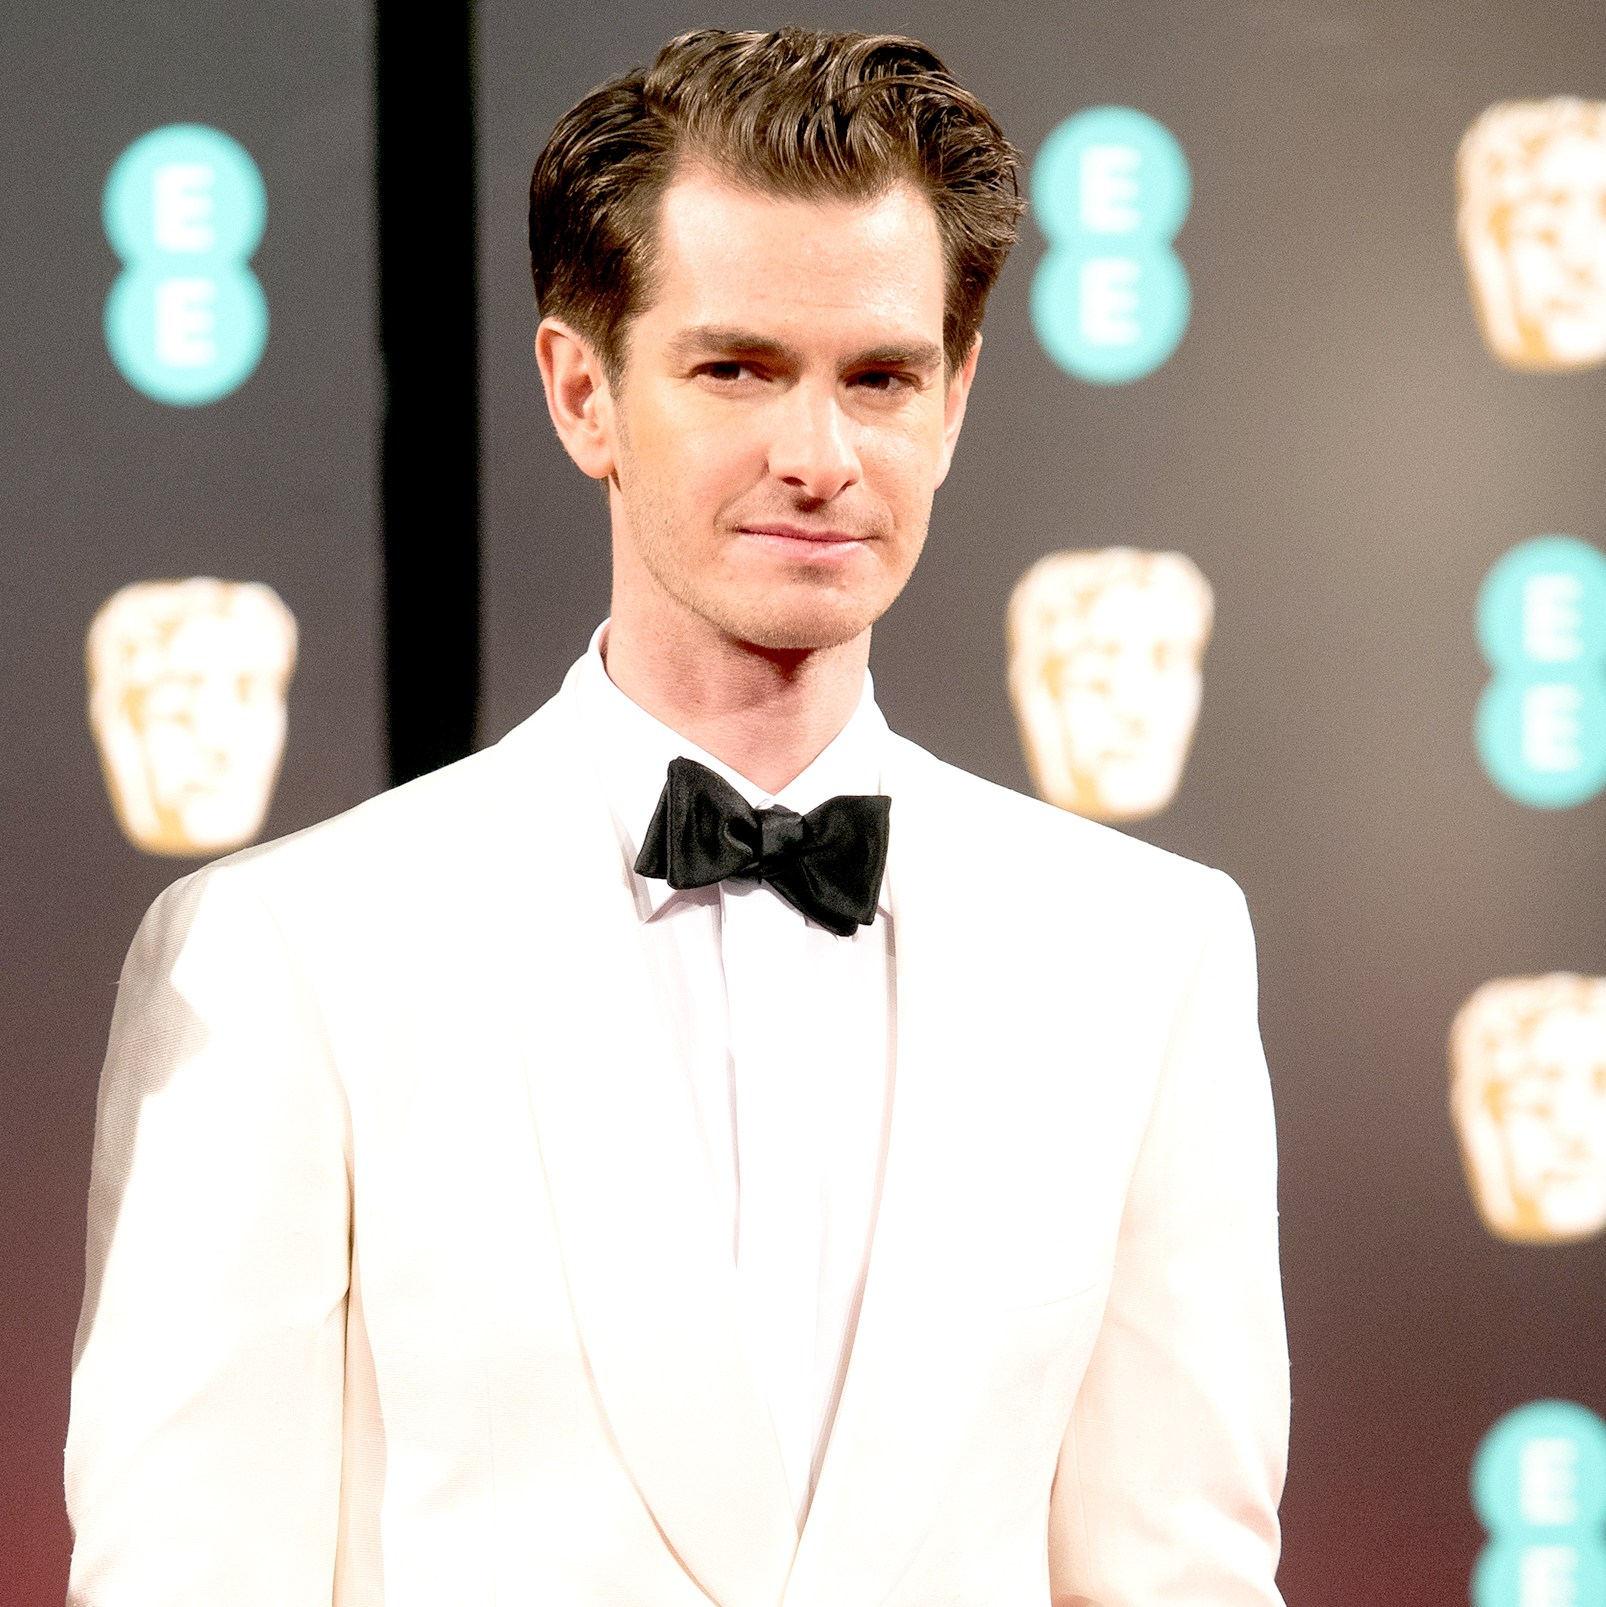 Andrew Garfield attends the 70th EE British Academy Film Awards (BAFTA) at Royal Albert Hall on February 12, 2017 in London, England.